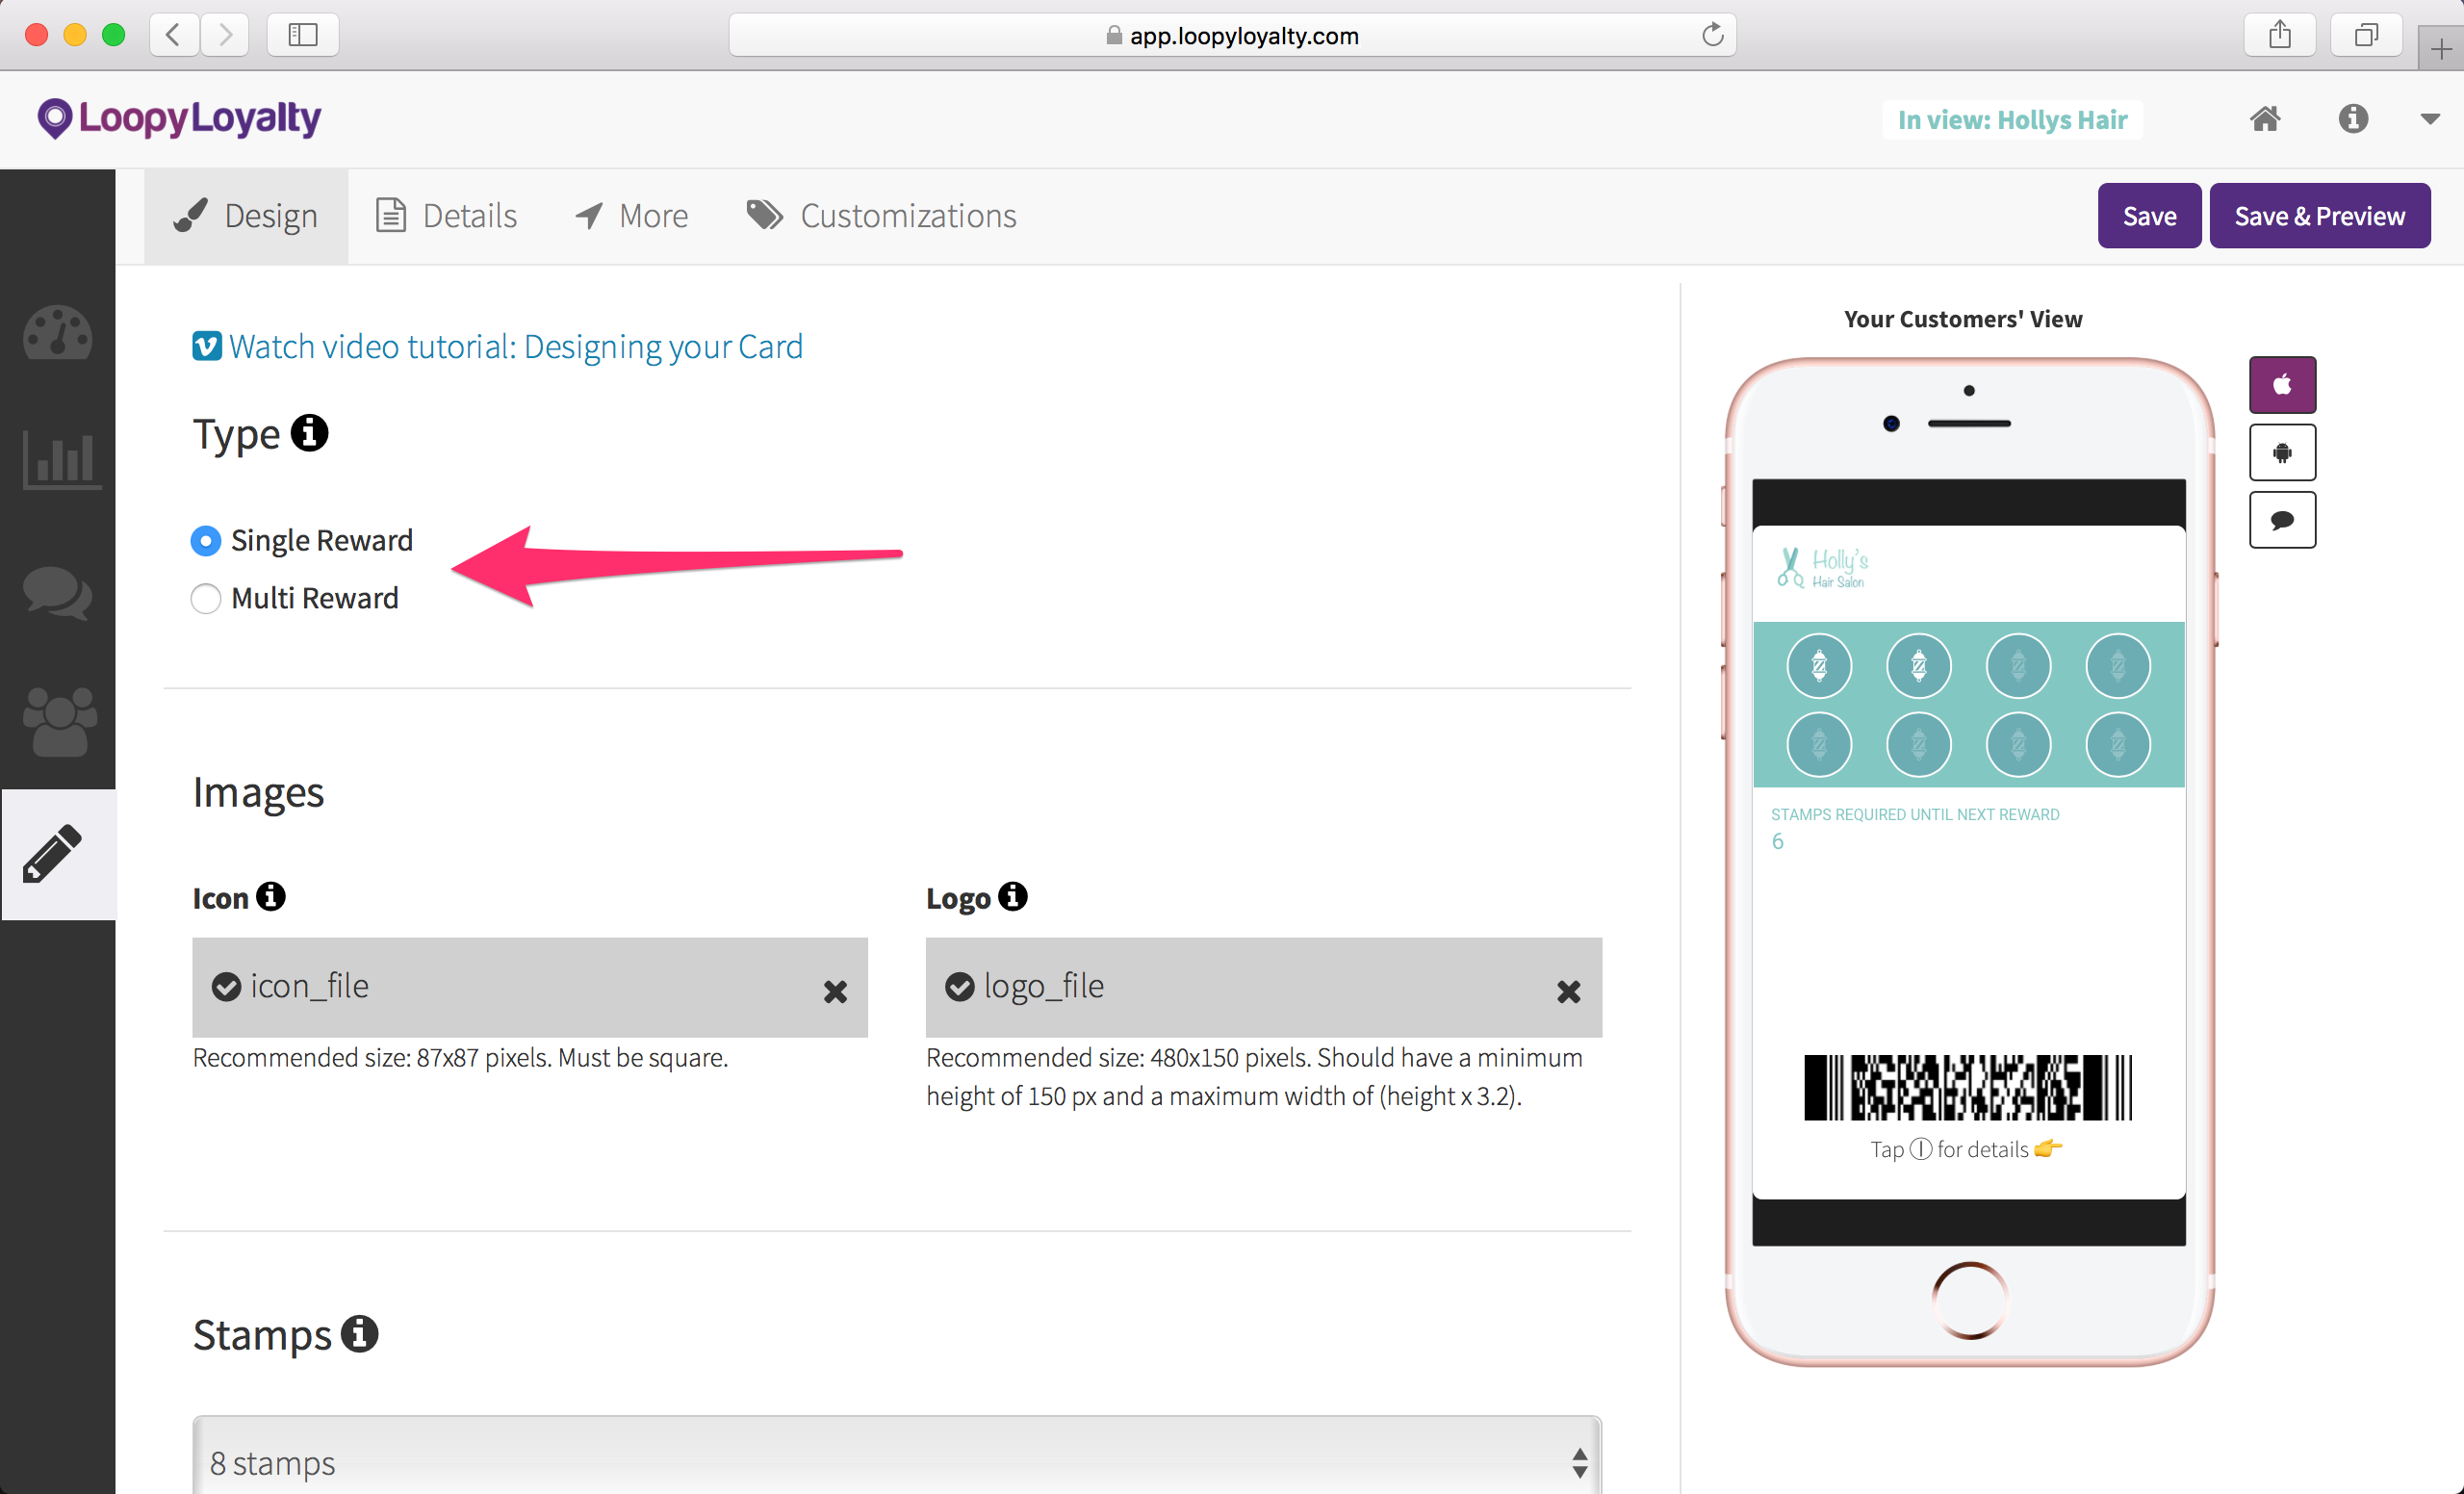 How to Create Digital Punch Cards for your Hair Salon in under 20